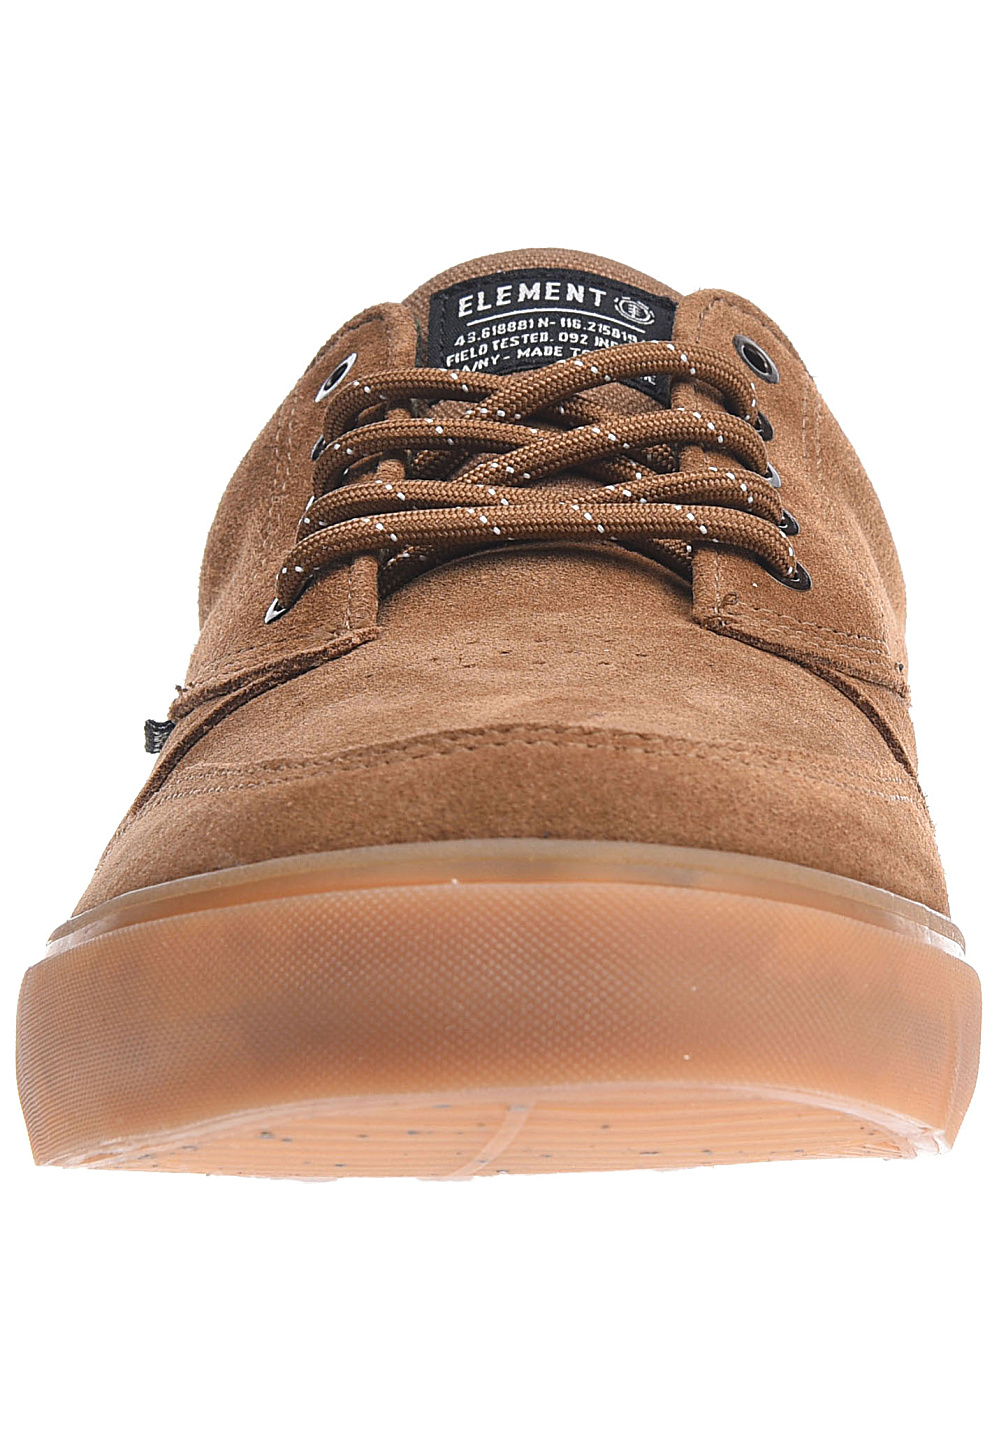 59b84ce4f8f18 Element Topaz C3 - Sneakers for Men - Brown